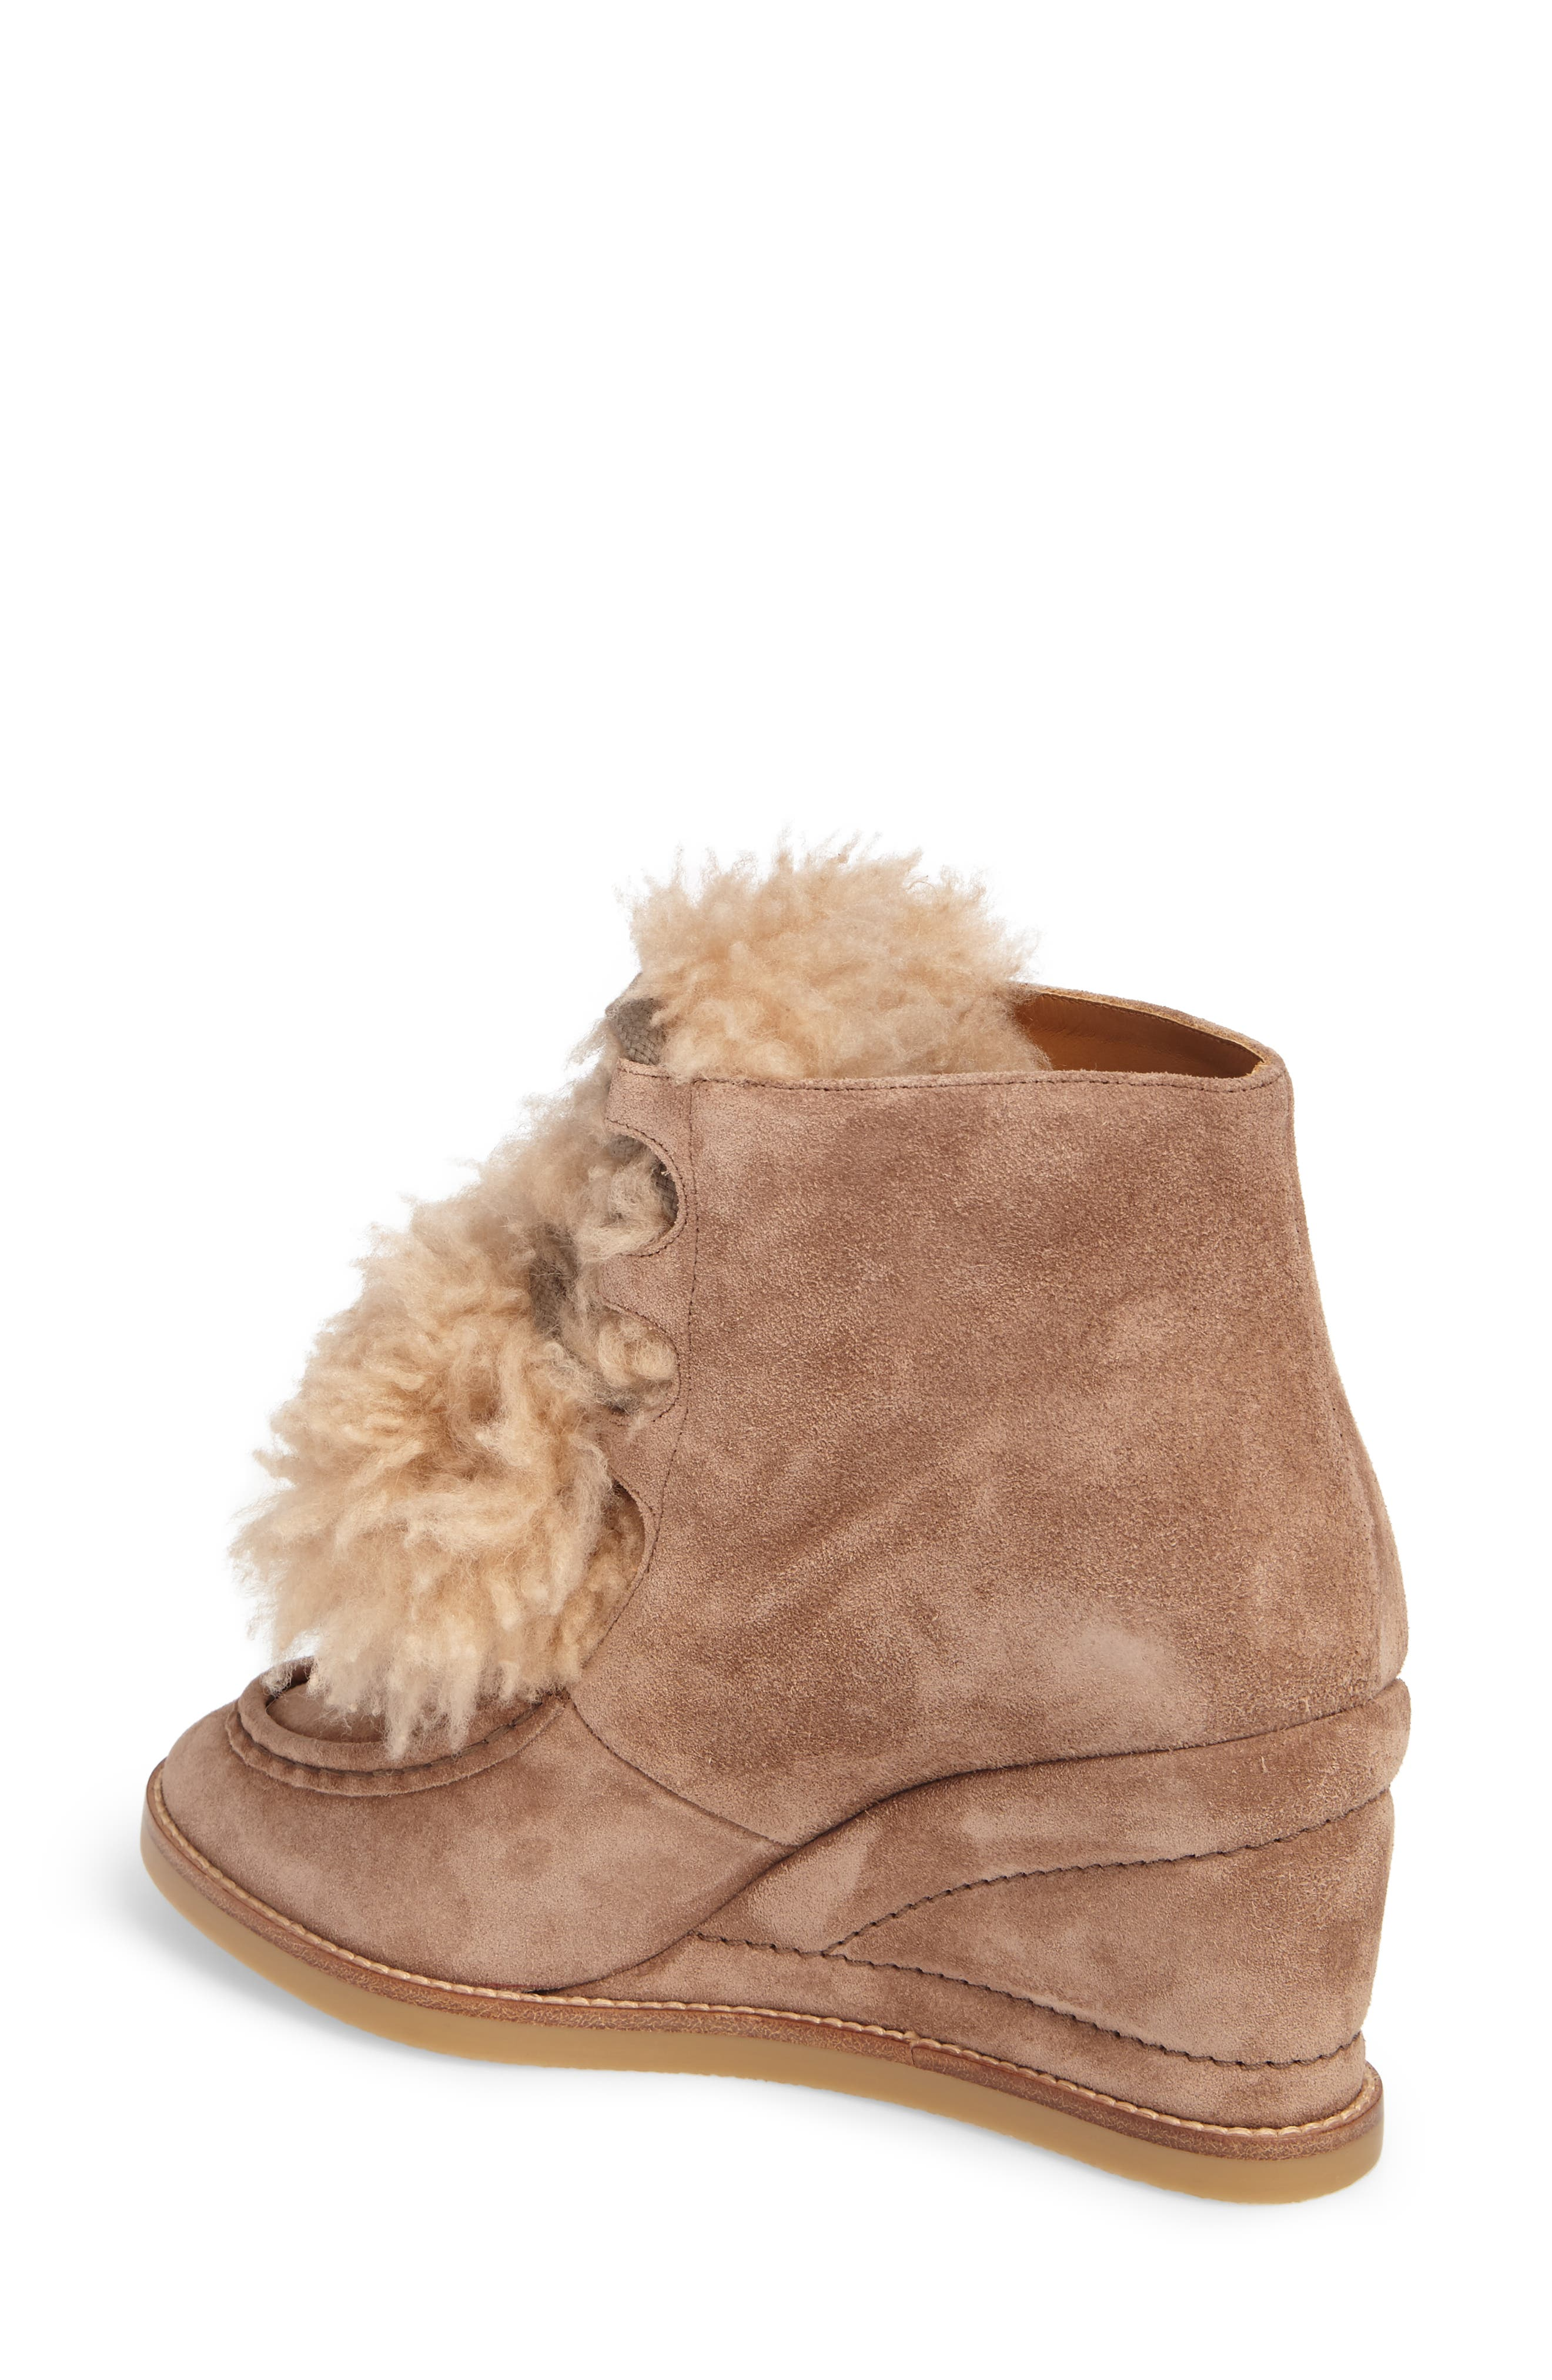 Peggy Genuine Shearling Wedge Bootie,                             Alternate thumbnail 2, color,                             250